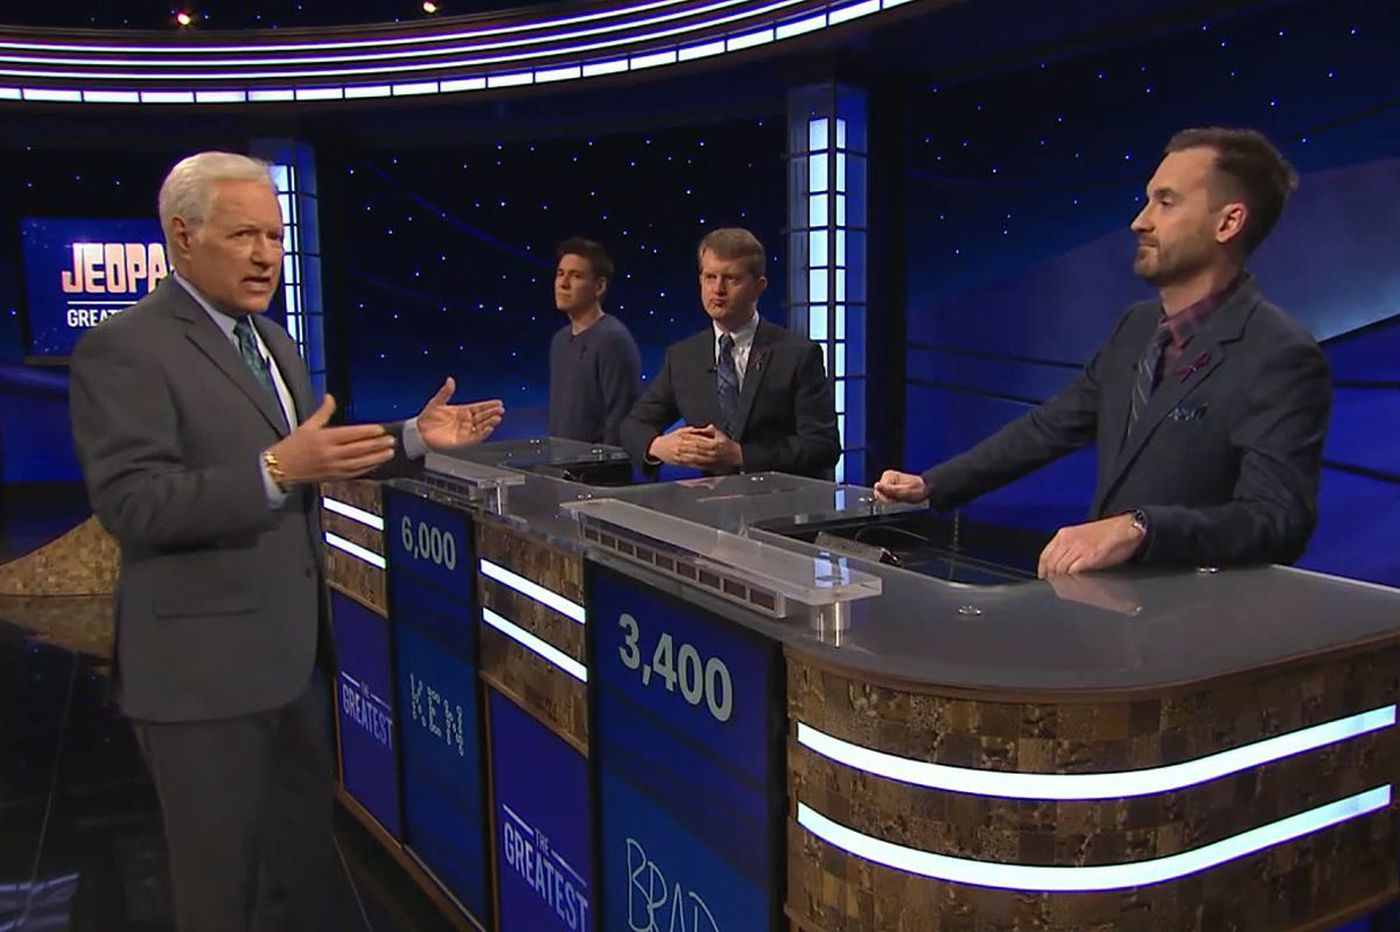 'Jeopardy! The Greatest of All Time' tournament: Who won Game 3?